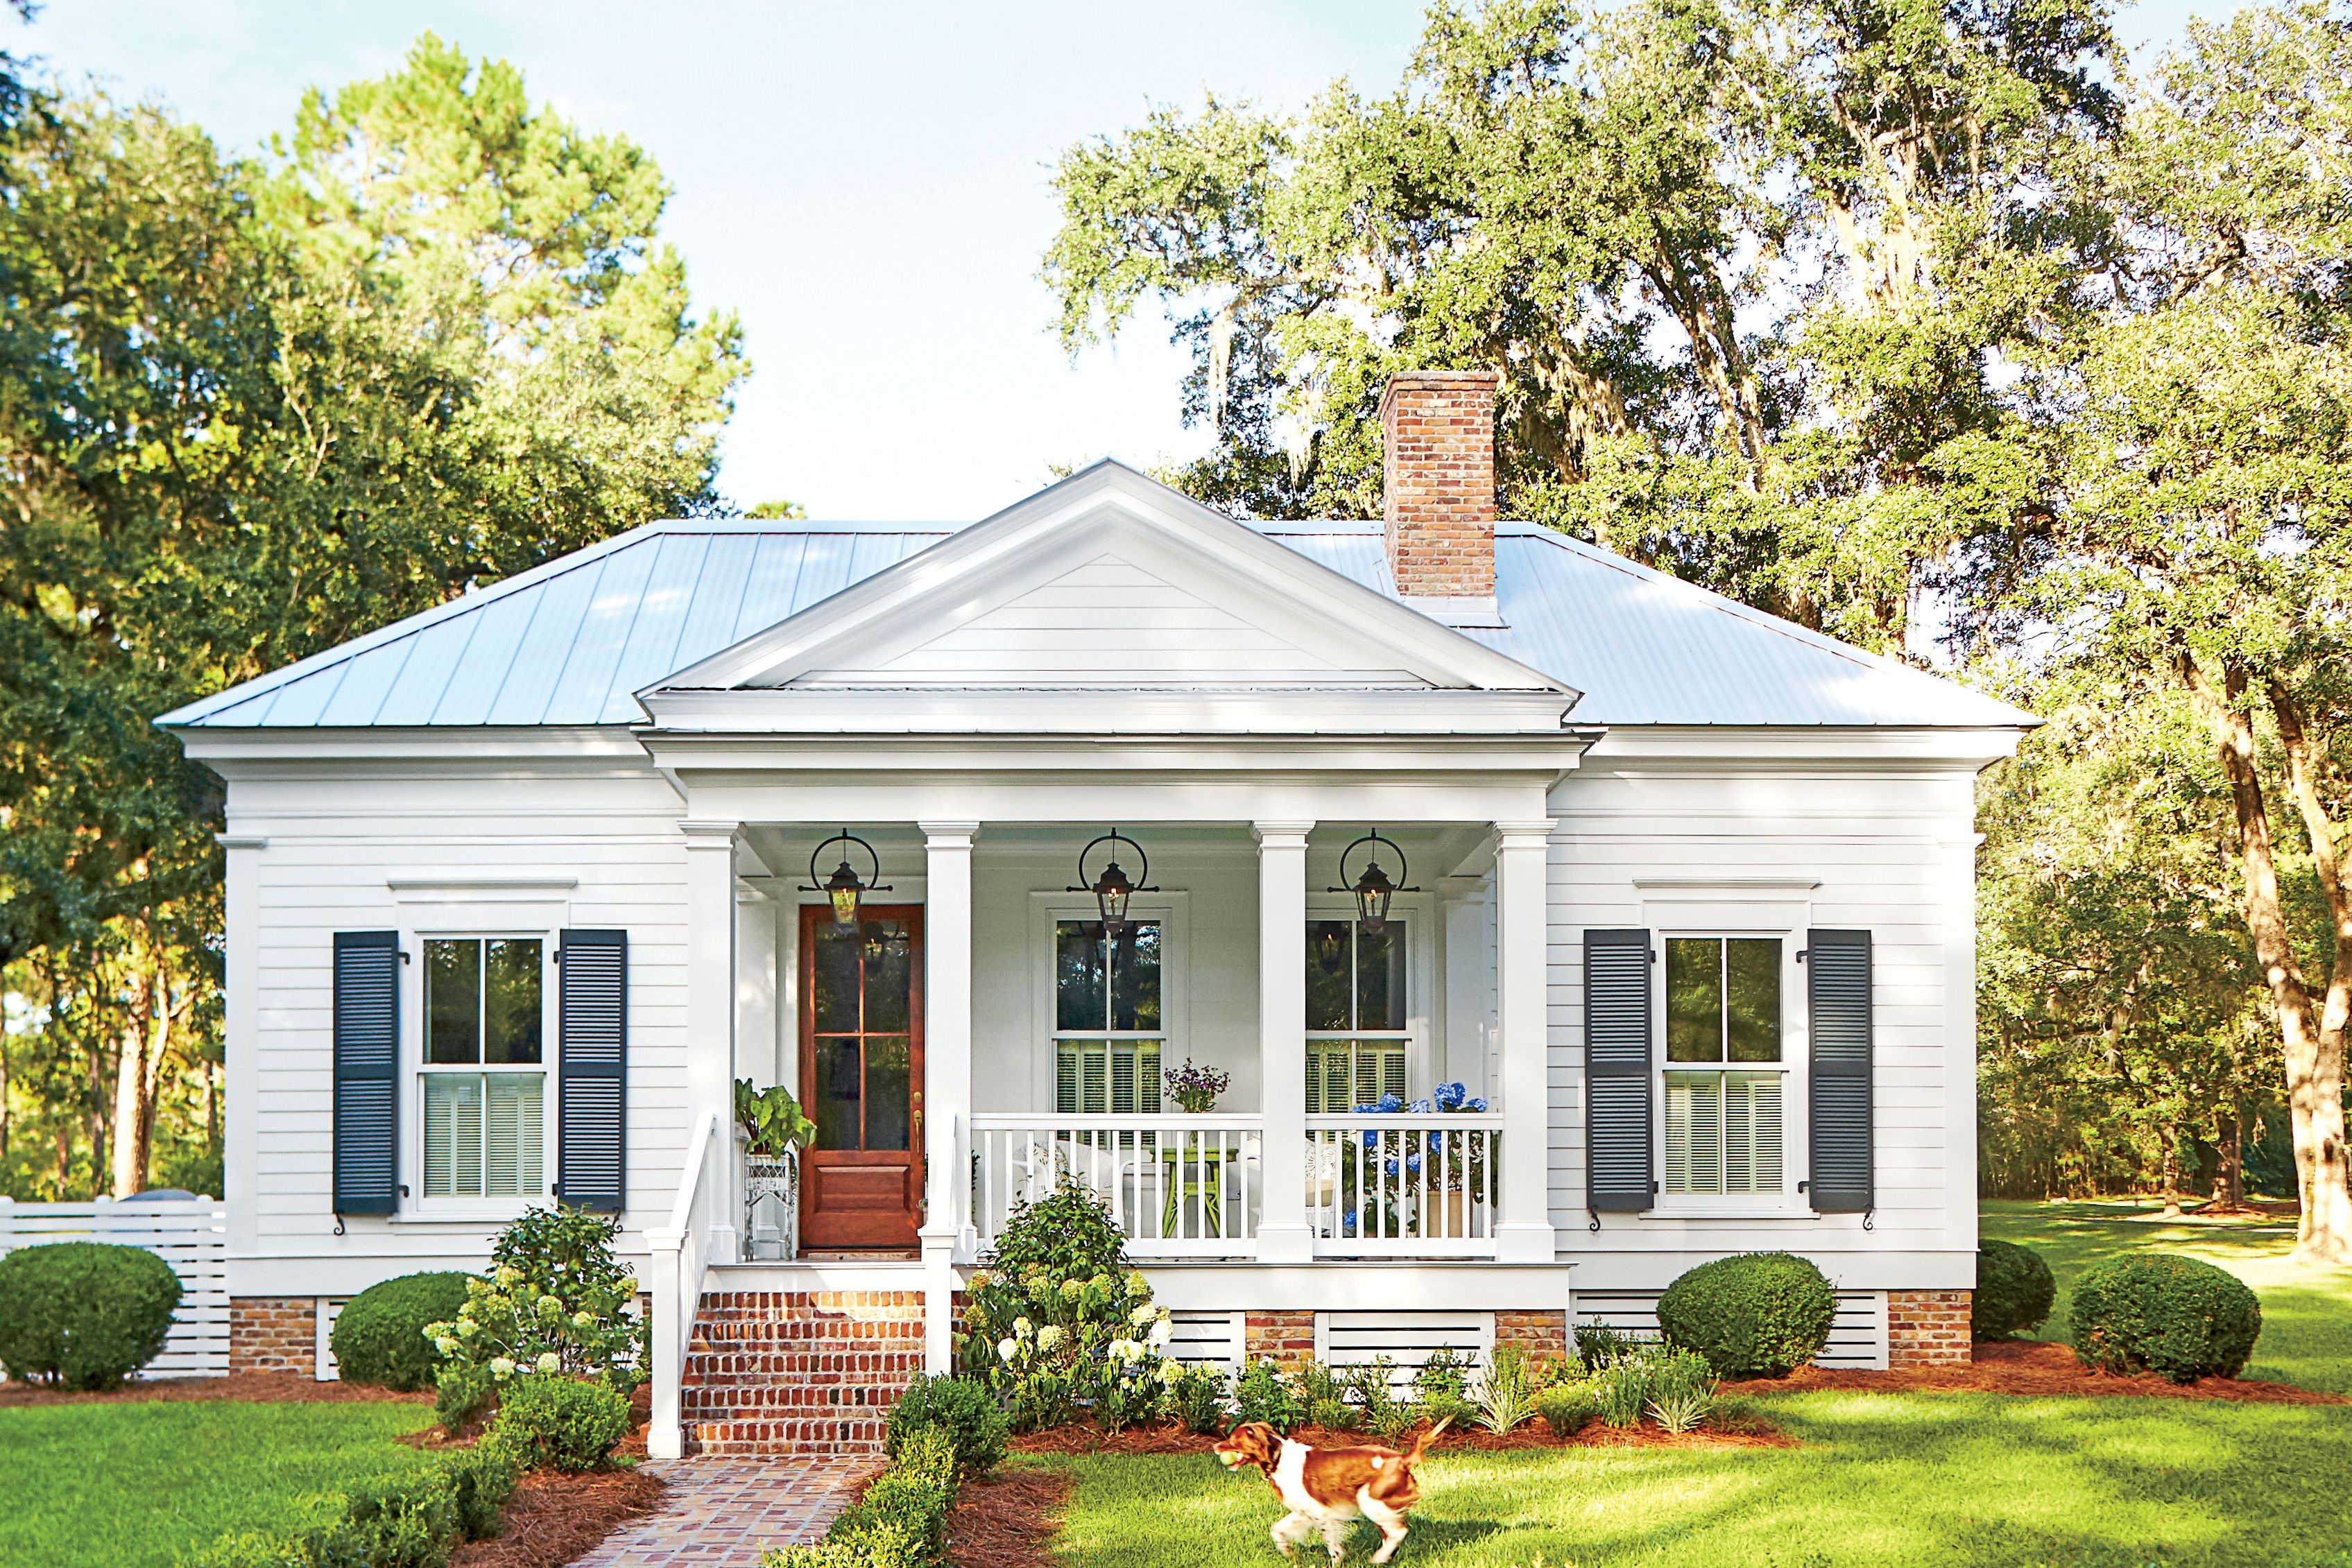 Brandon ingram florida cottage cottages pinterest for Cottege house